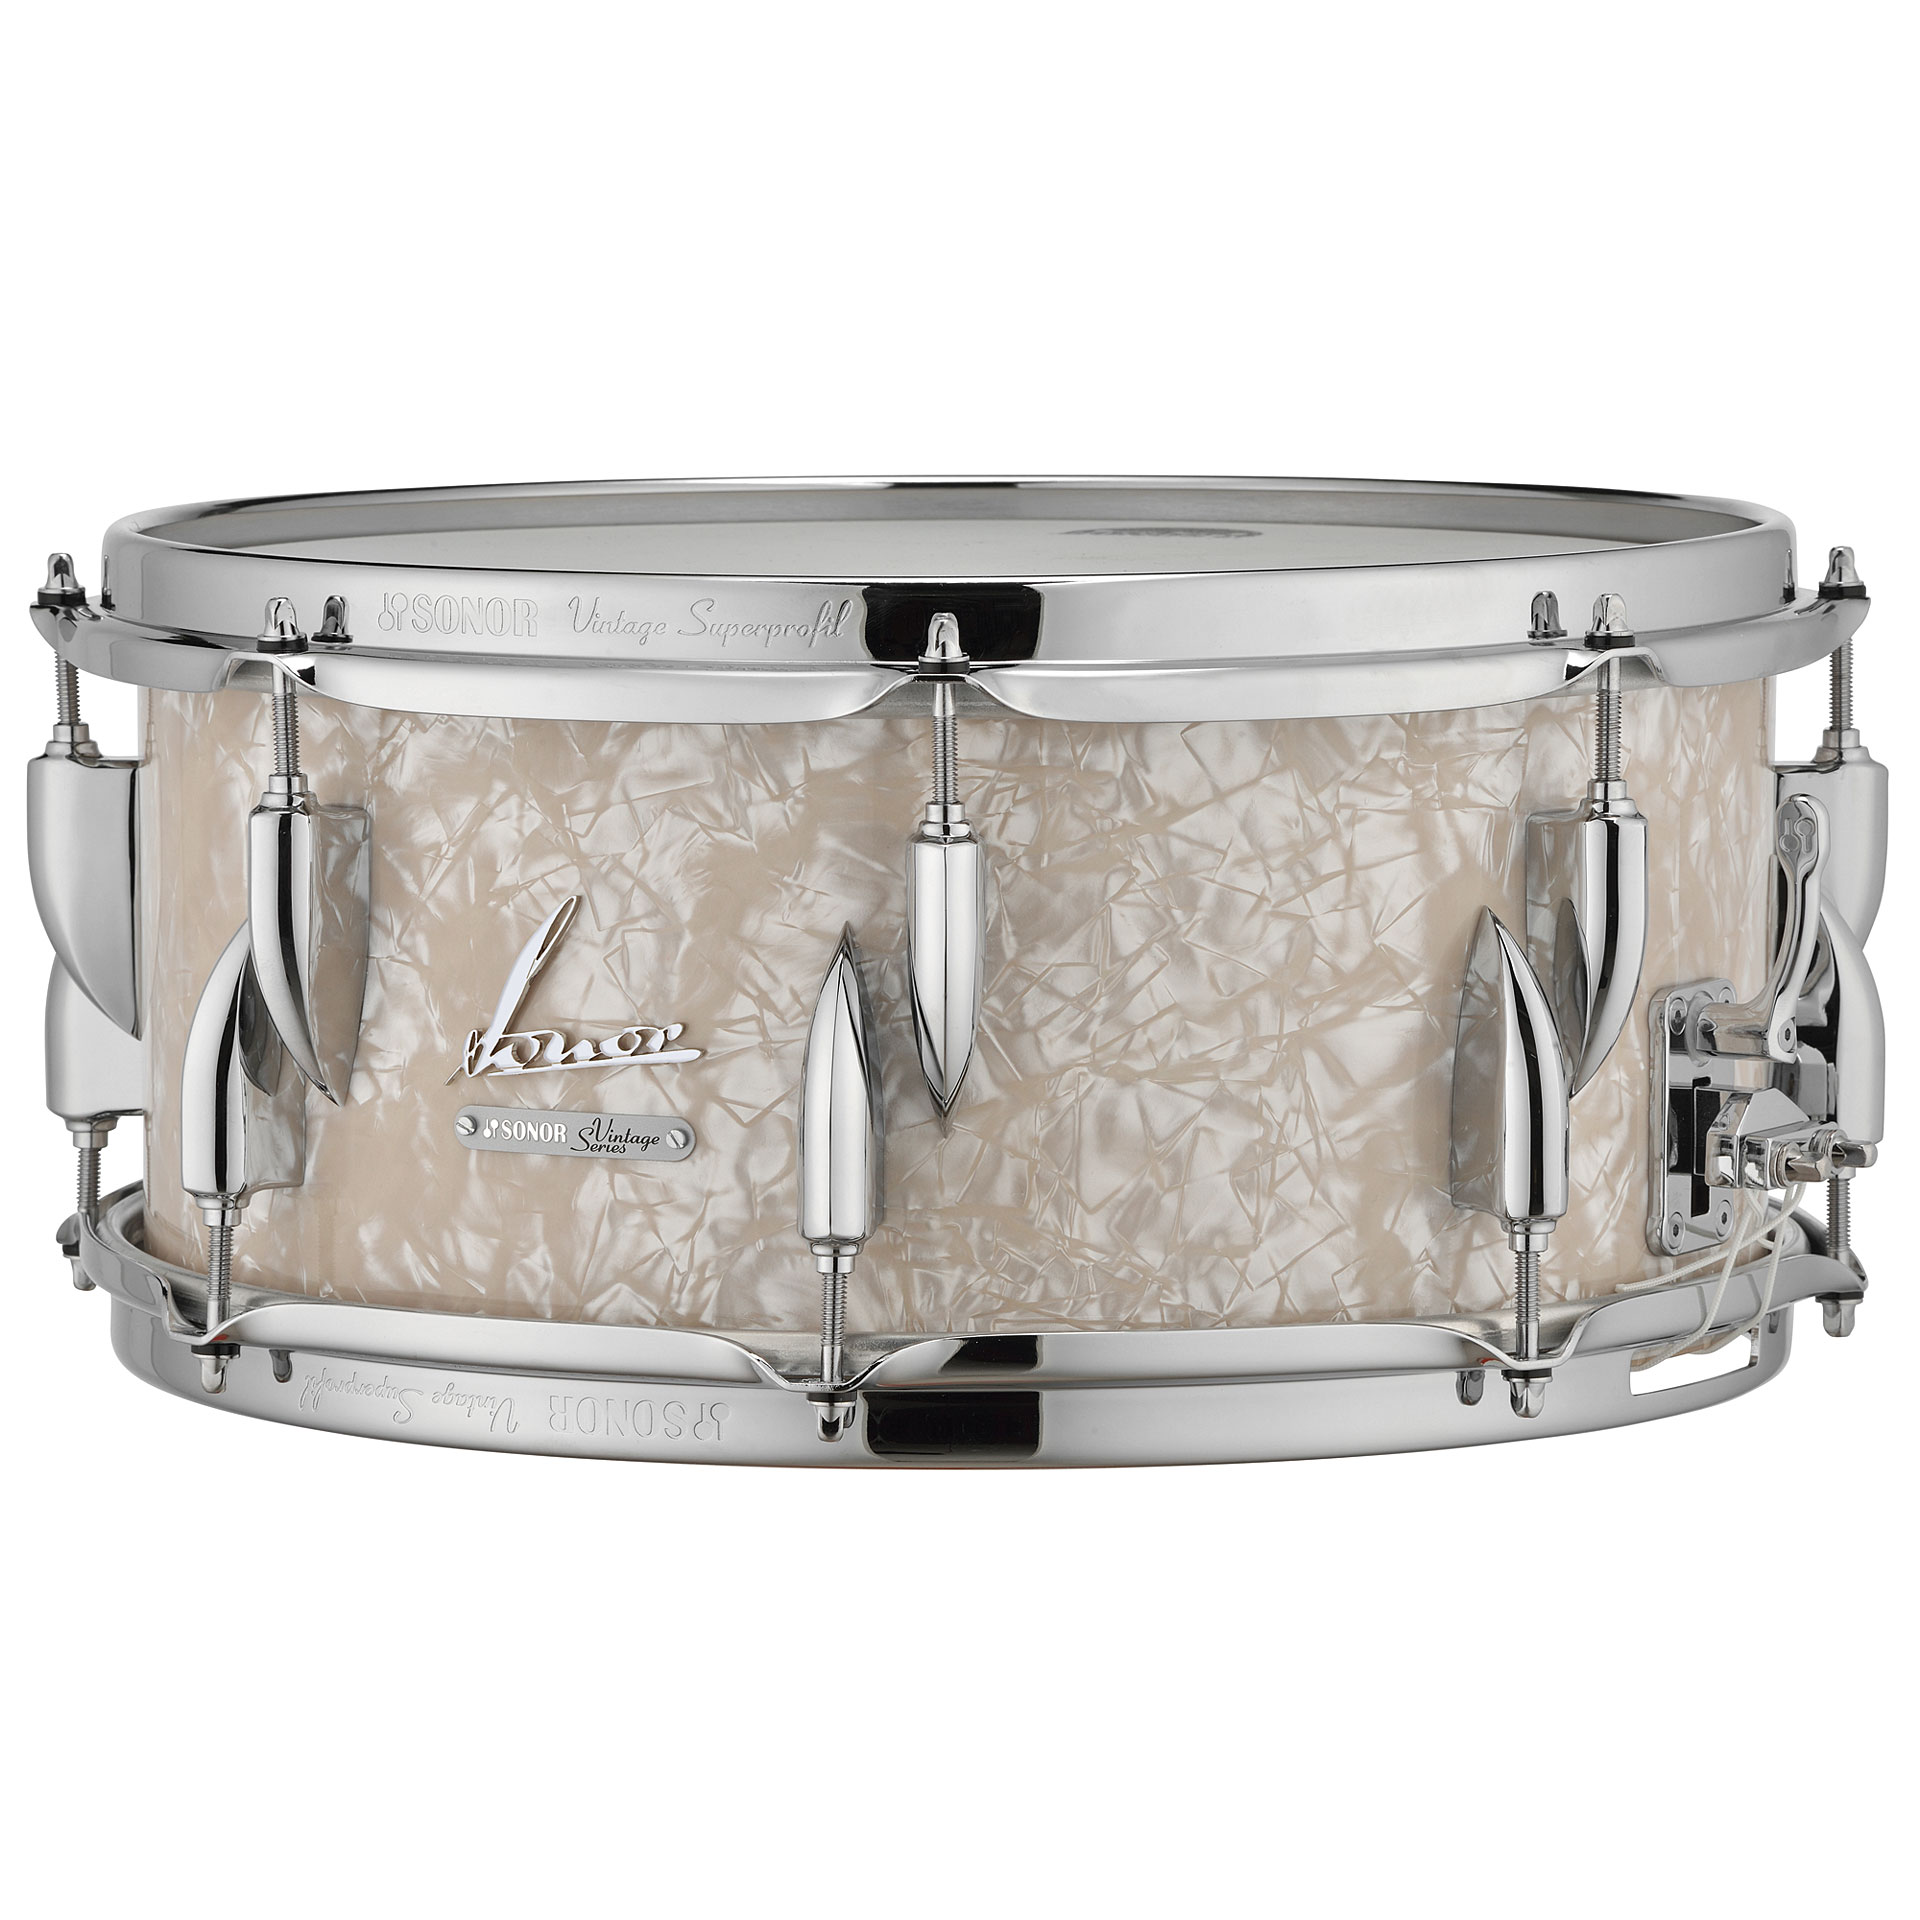 Sonor vintage series vt 15 14x5 75 sdw vintage pearl for Classic house drums